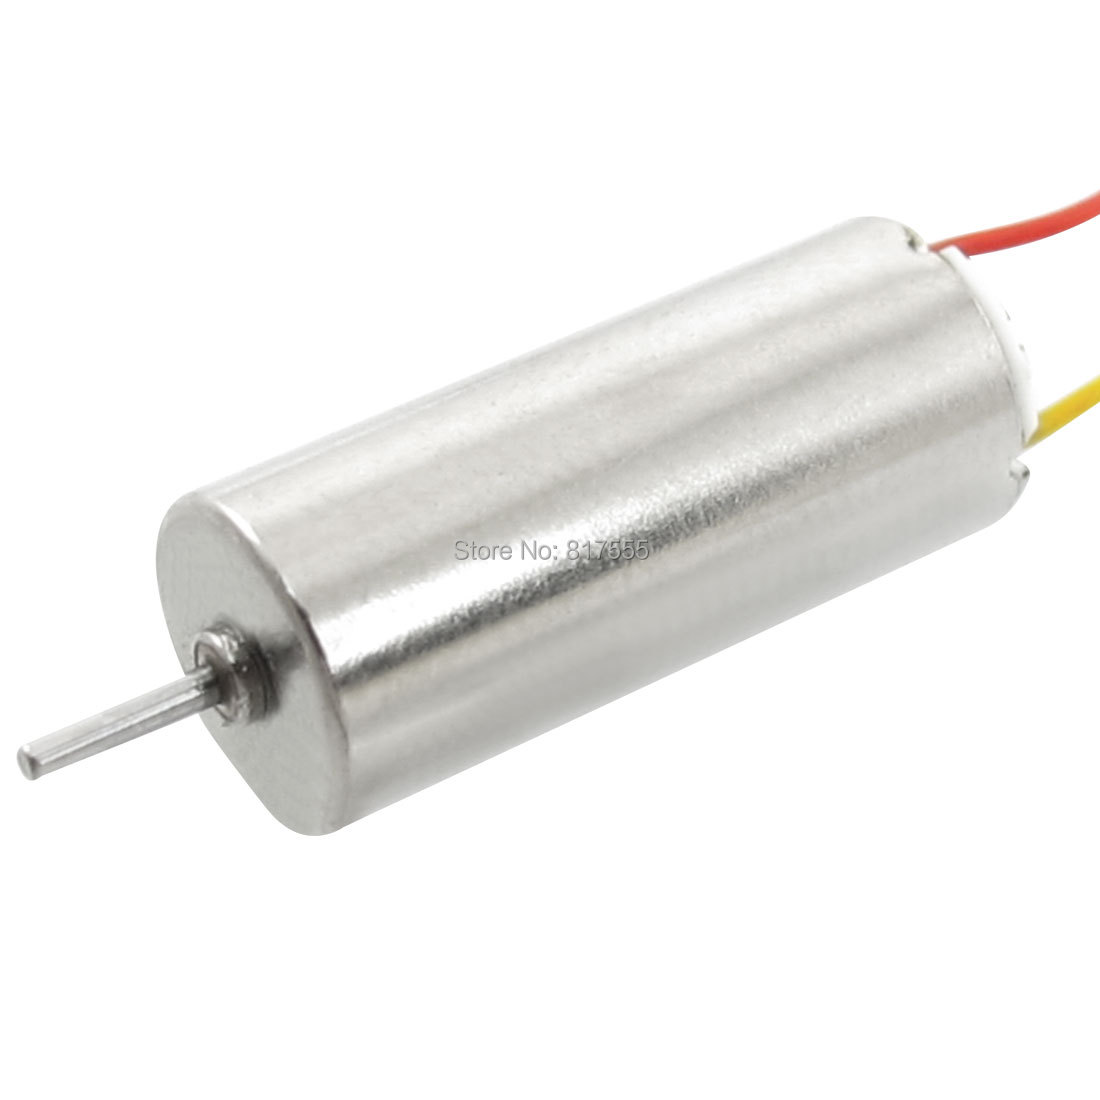 Shaft Diameter 0.8mm DC 3V 60-70mA 20000-40000RPM Electric Coreless Motor 7mm x 16mm (D*H) for RC Helicopter Toy Discount 50(China (Mainland))